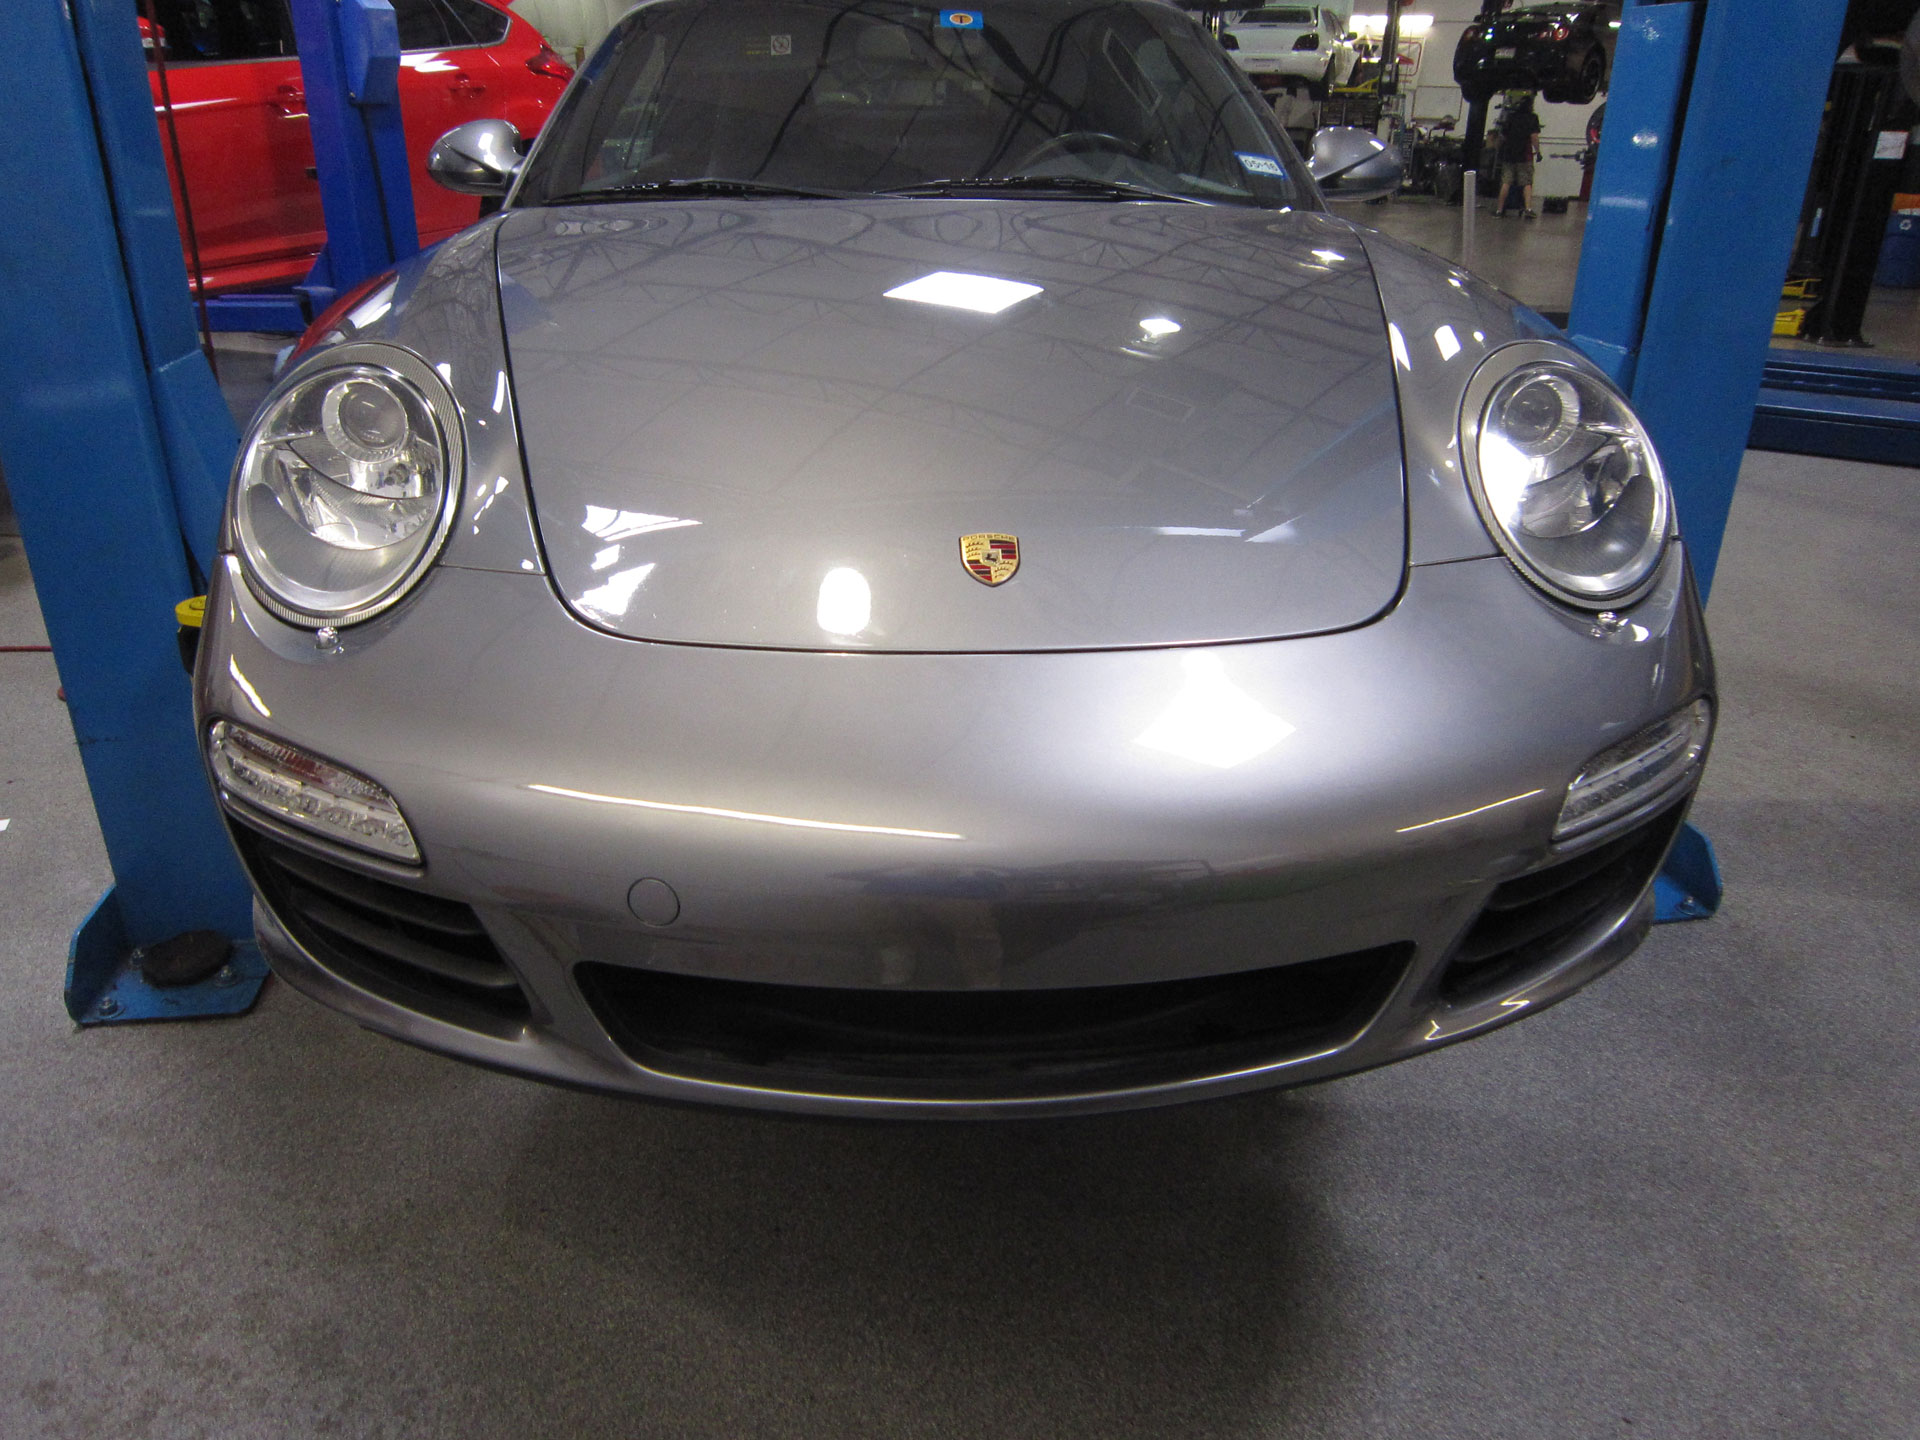 09 Porsche 911 protected by Modern Armor with 3M Clear Bra Paint Protection Film